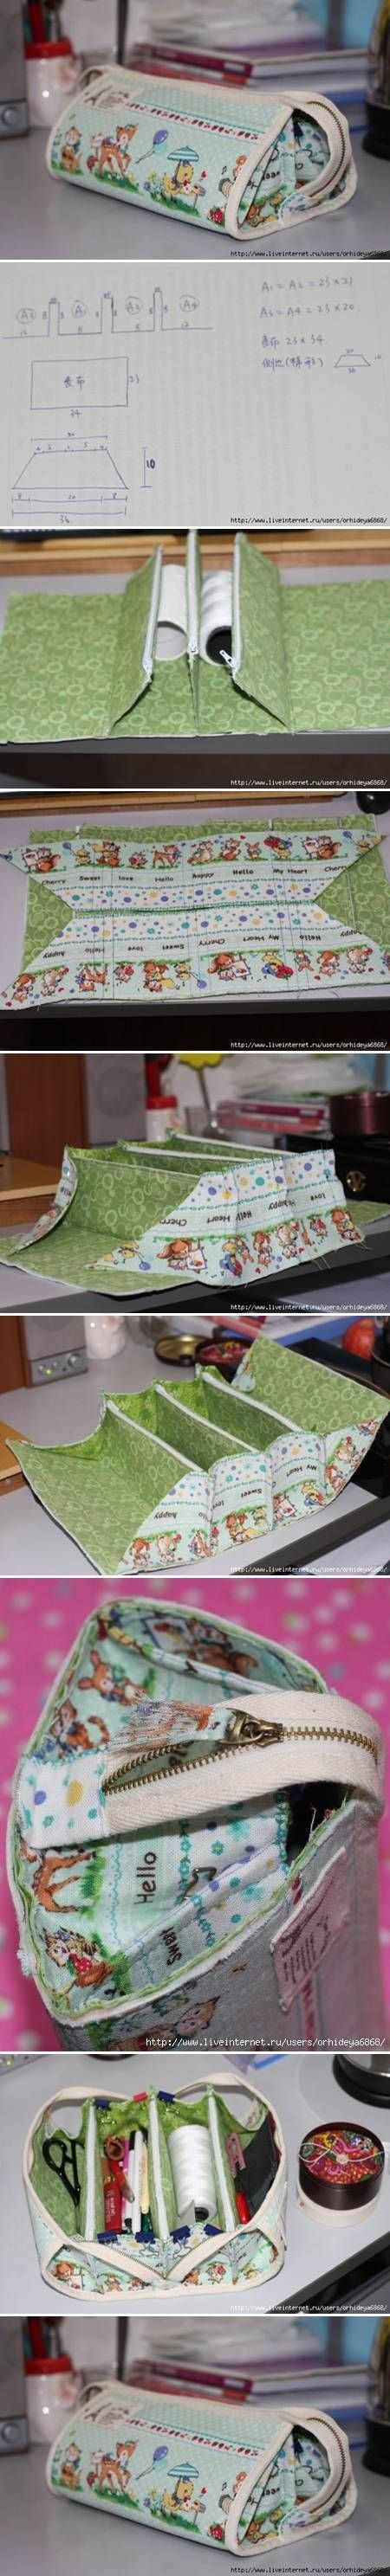 DIY Handbag for Needlework diy easy crafts diy ideas diy crafts do it yourself crafty easy diy diy tips diy images home crafts craft ideas sewing diy tutorial sewing ideas sewing crafts